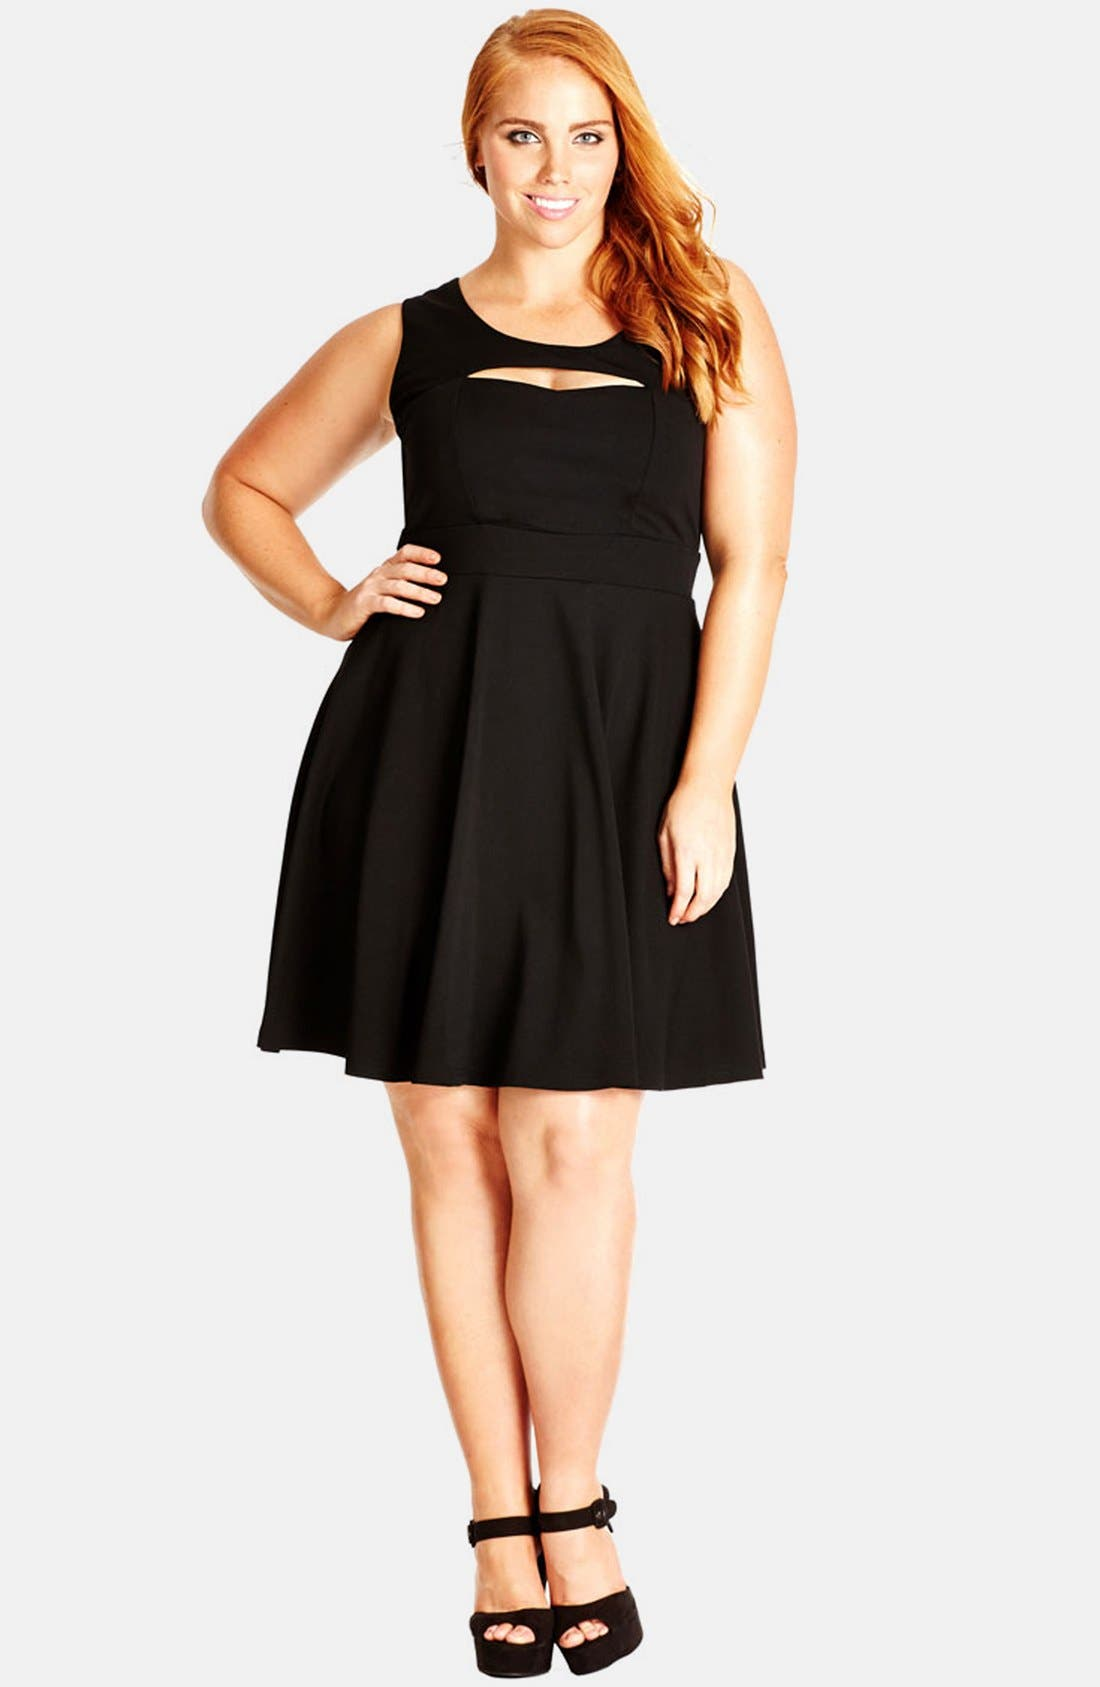 Main Image - City Chic 'Peek-a-Boo' Fit & Flare Dress (Plus Size)